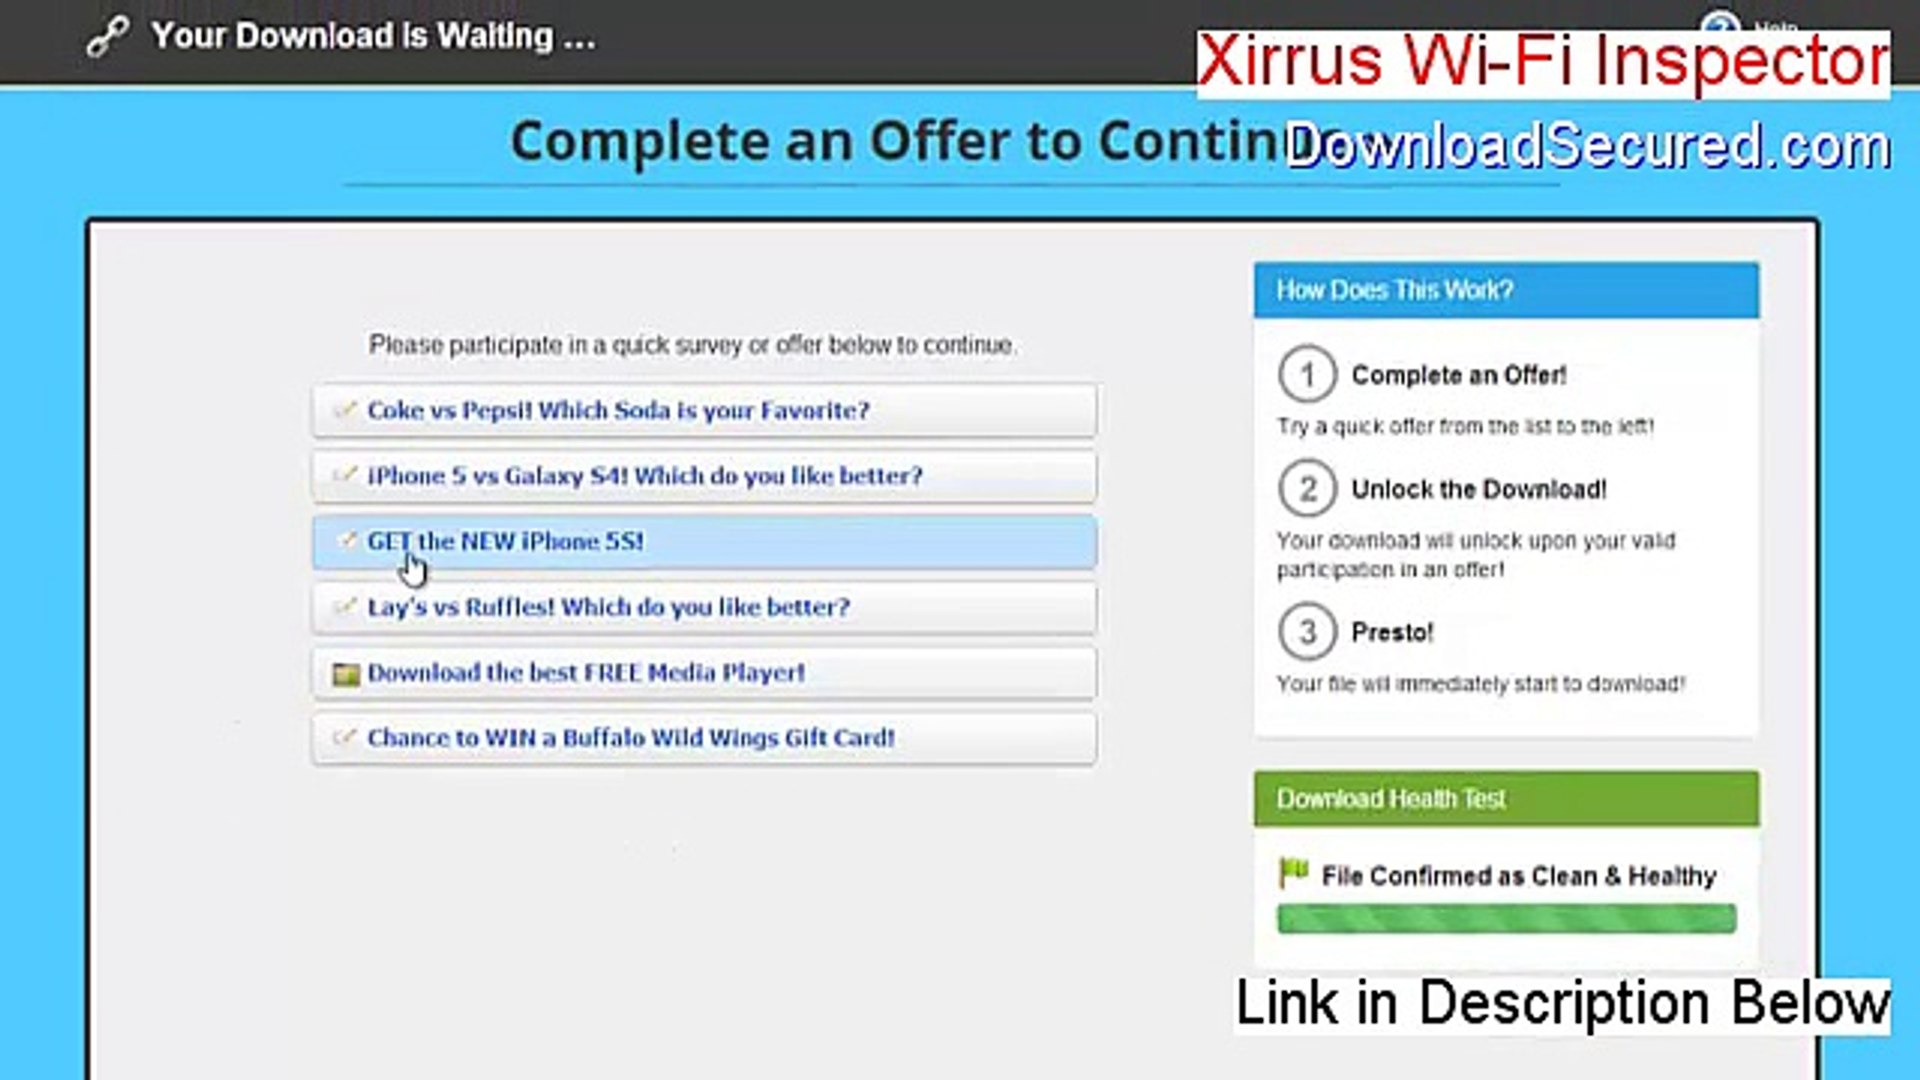 Xirrus Wi-Fi Inspector Download (Download Now)